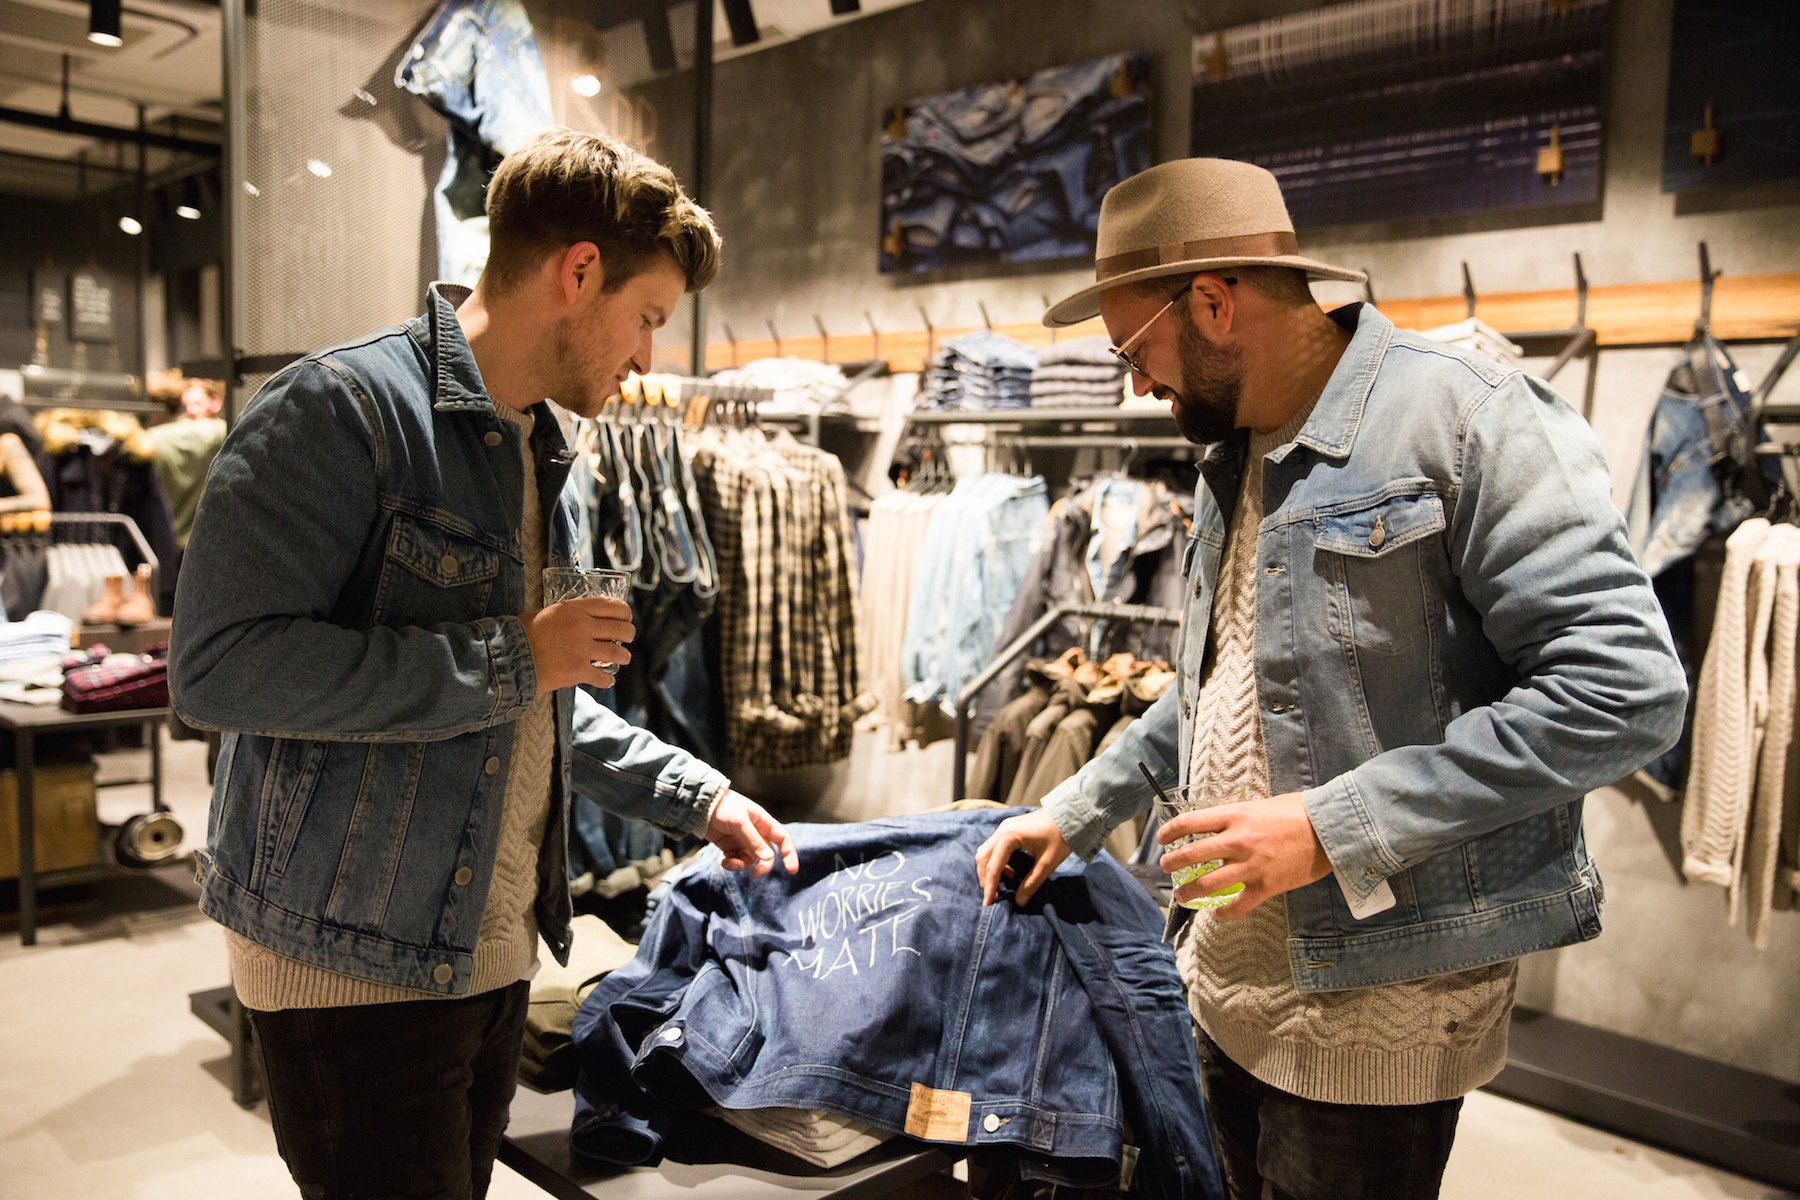 jack-and-jones-jeans-intelligence-studio-salzburg-opening_meanwhile-in-awesometown_austrian-mens-fashion-and-lifestyleblog18